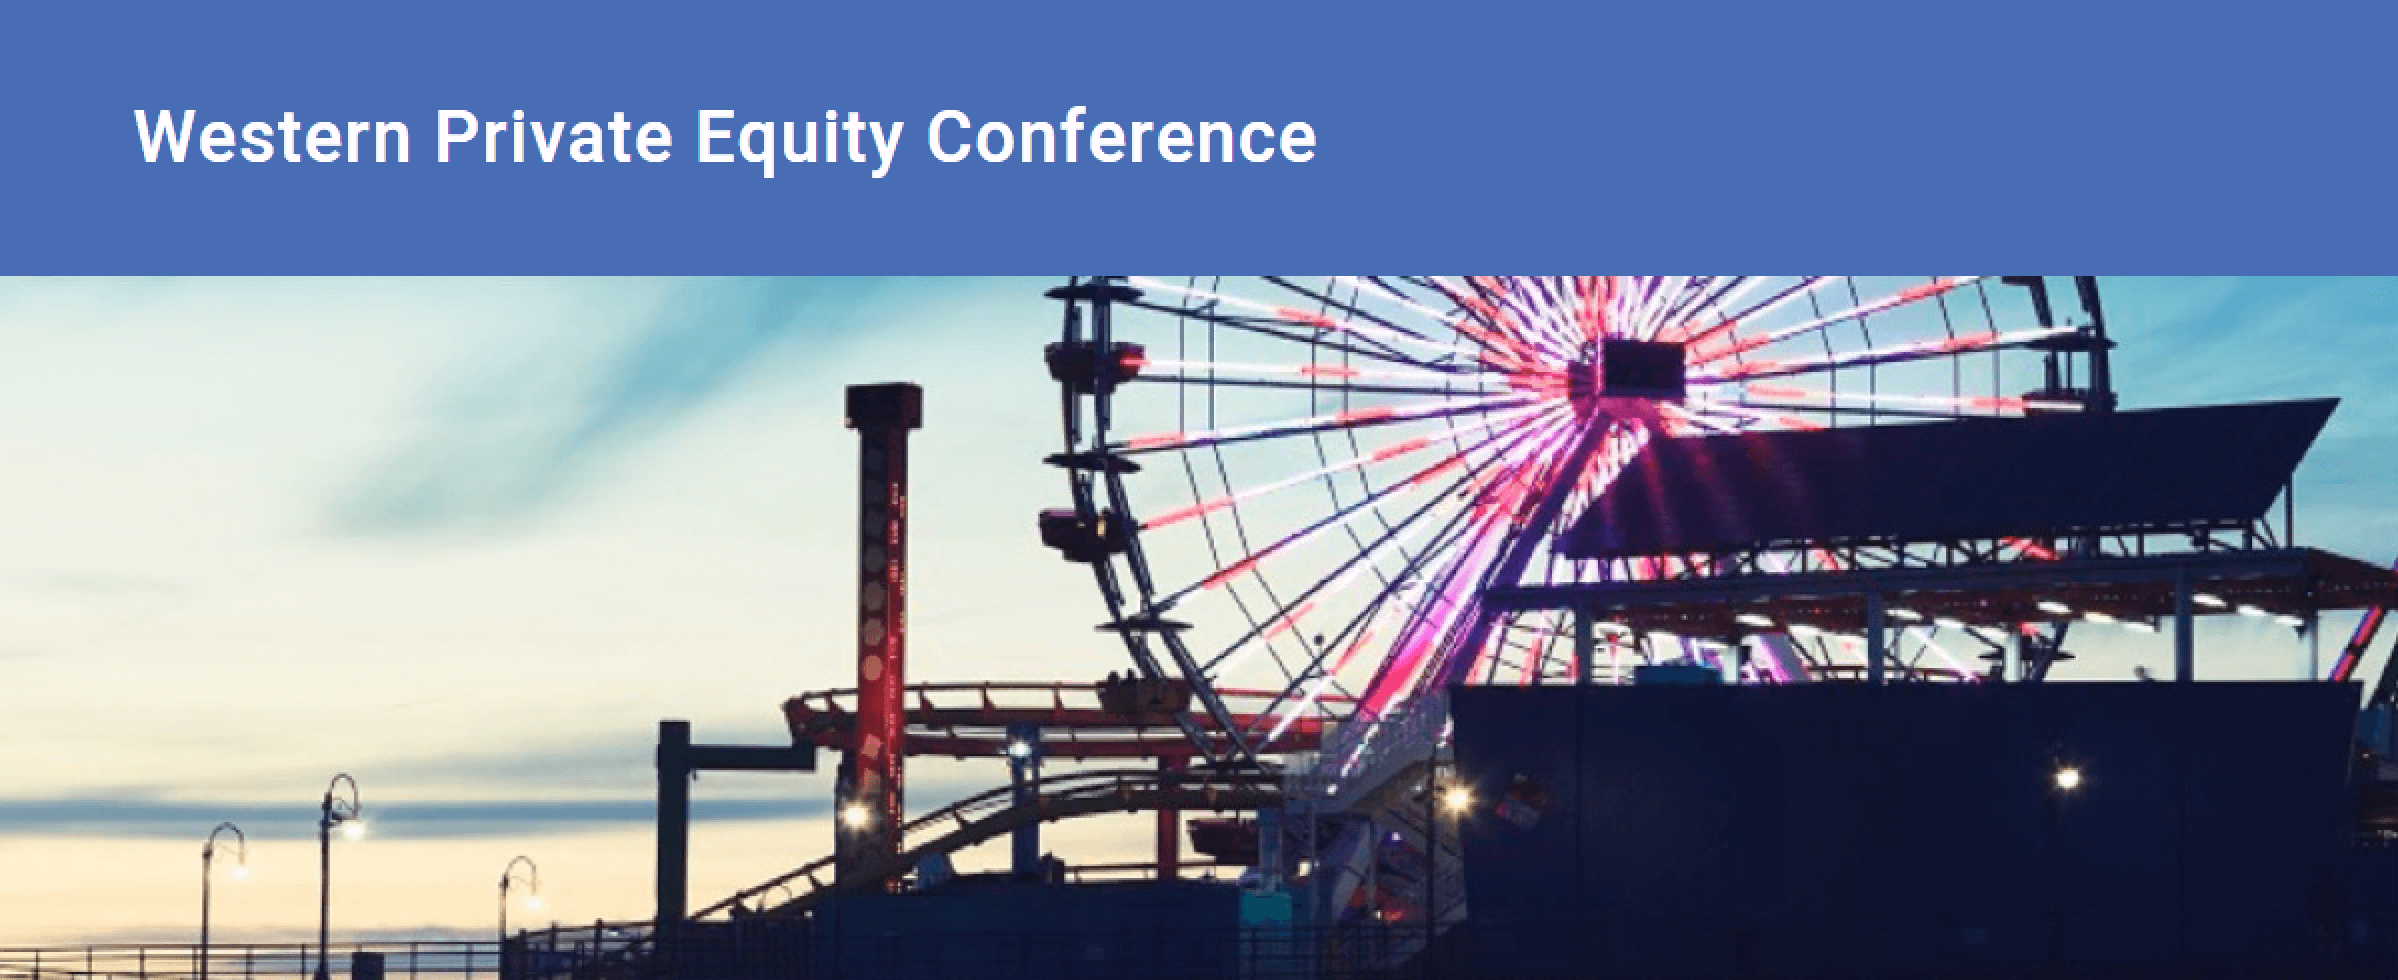 Western Private Equity Conference